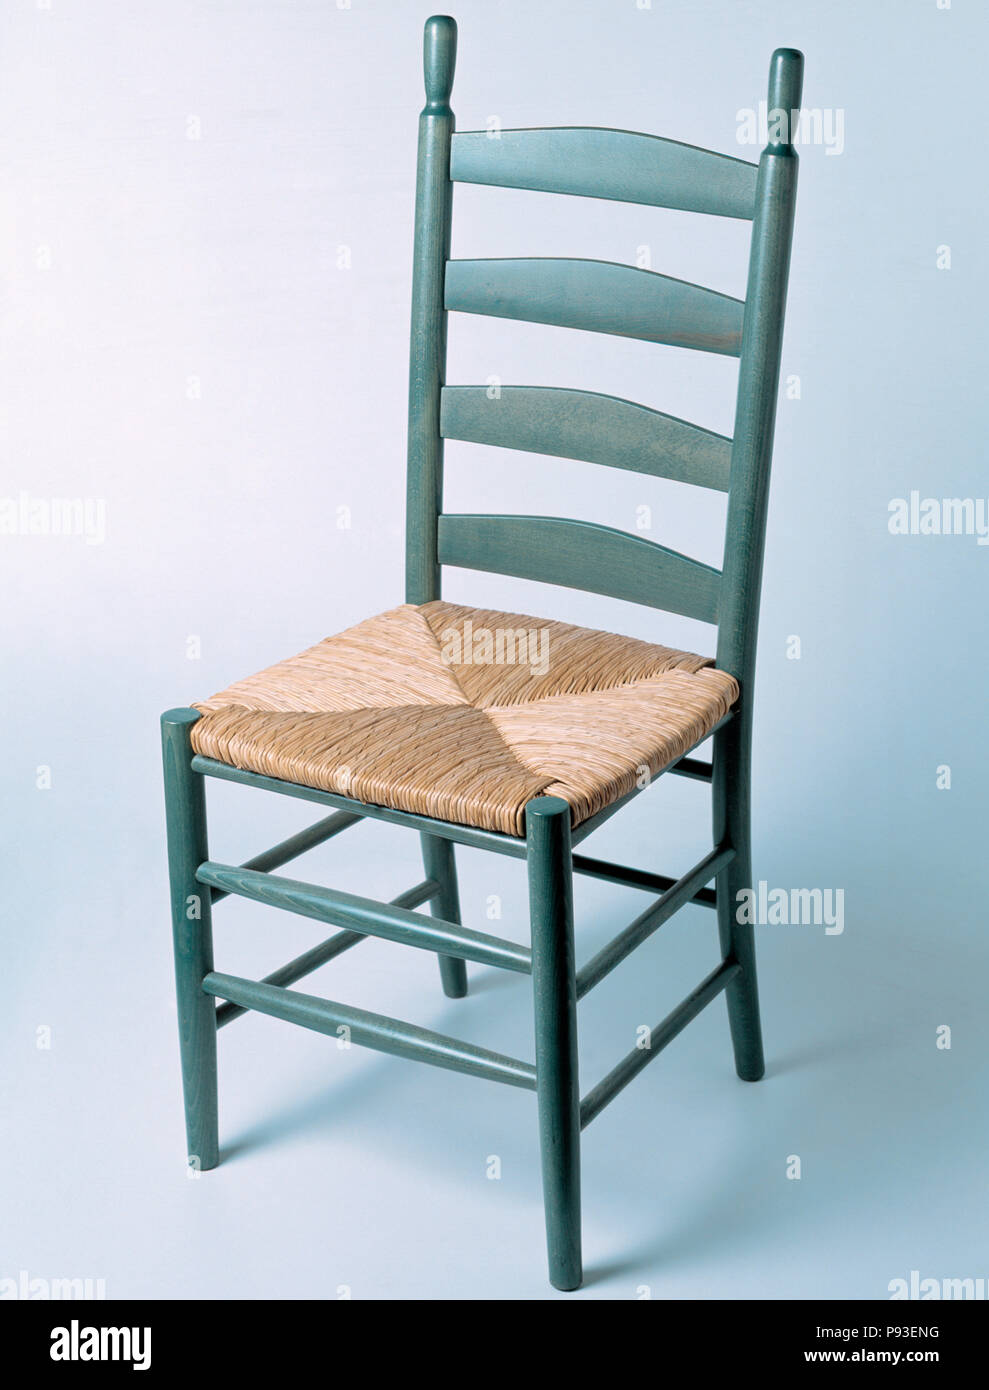 Ladder Back Chair Stock Photos & Ladder Back Chair Stock Images - Alamy